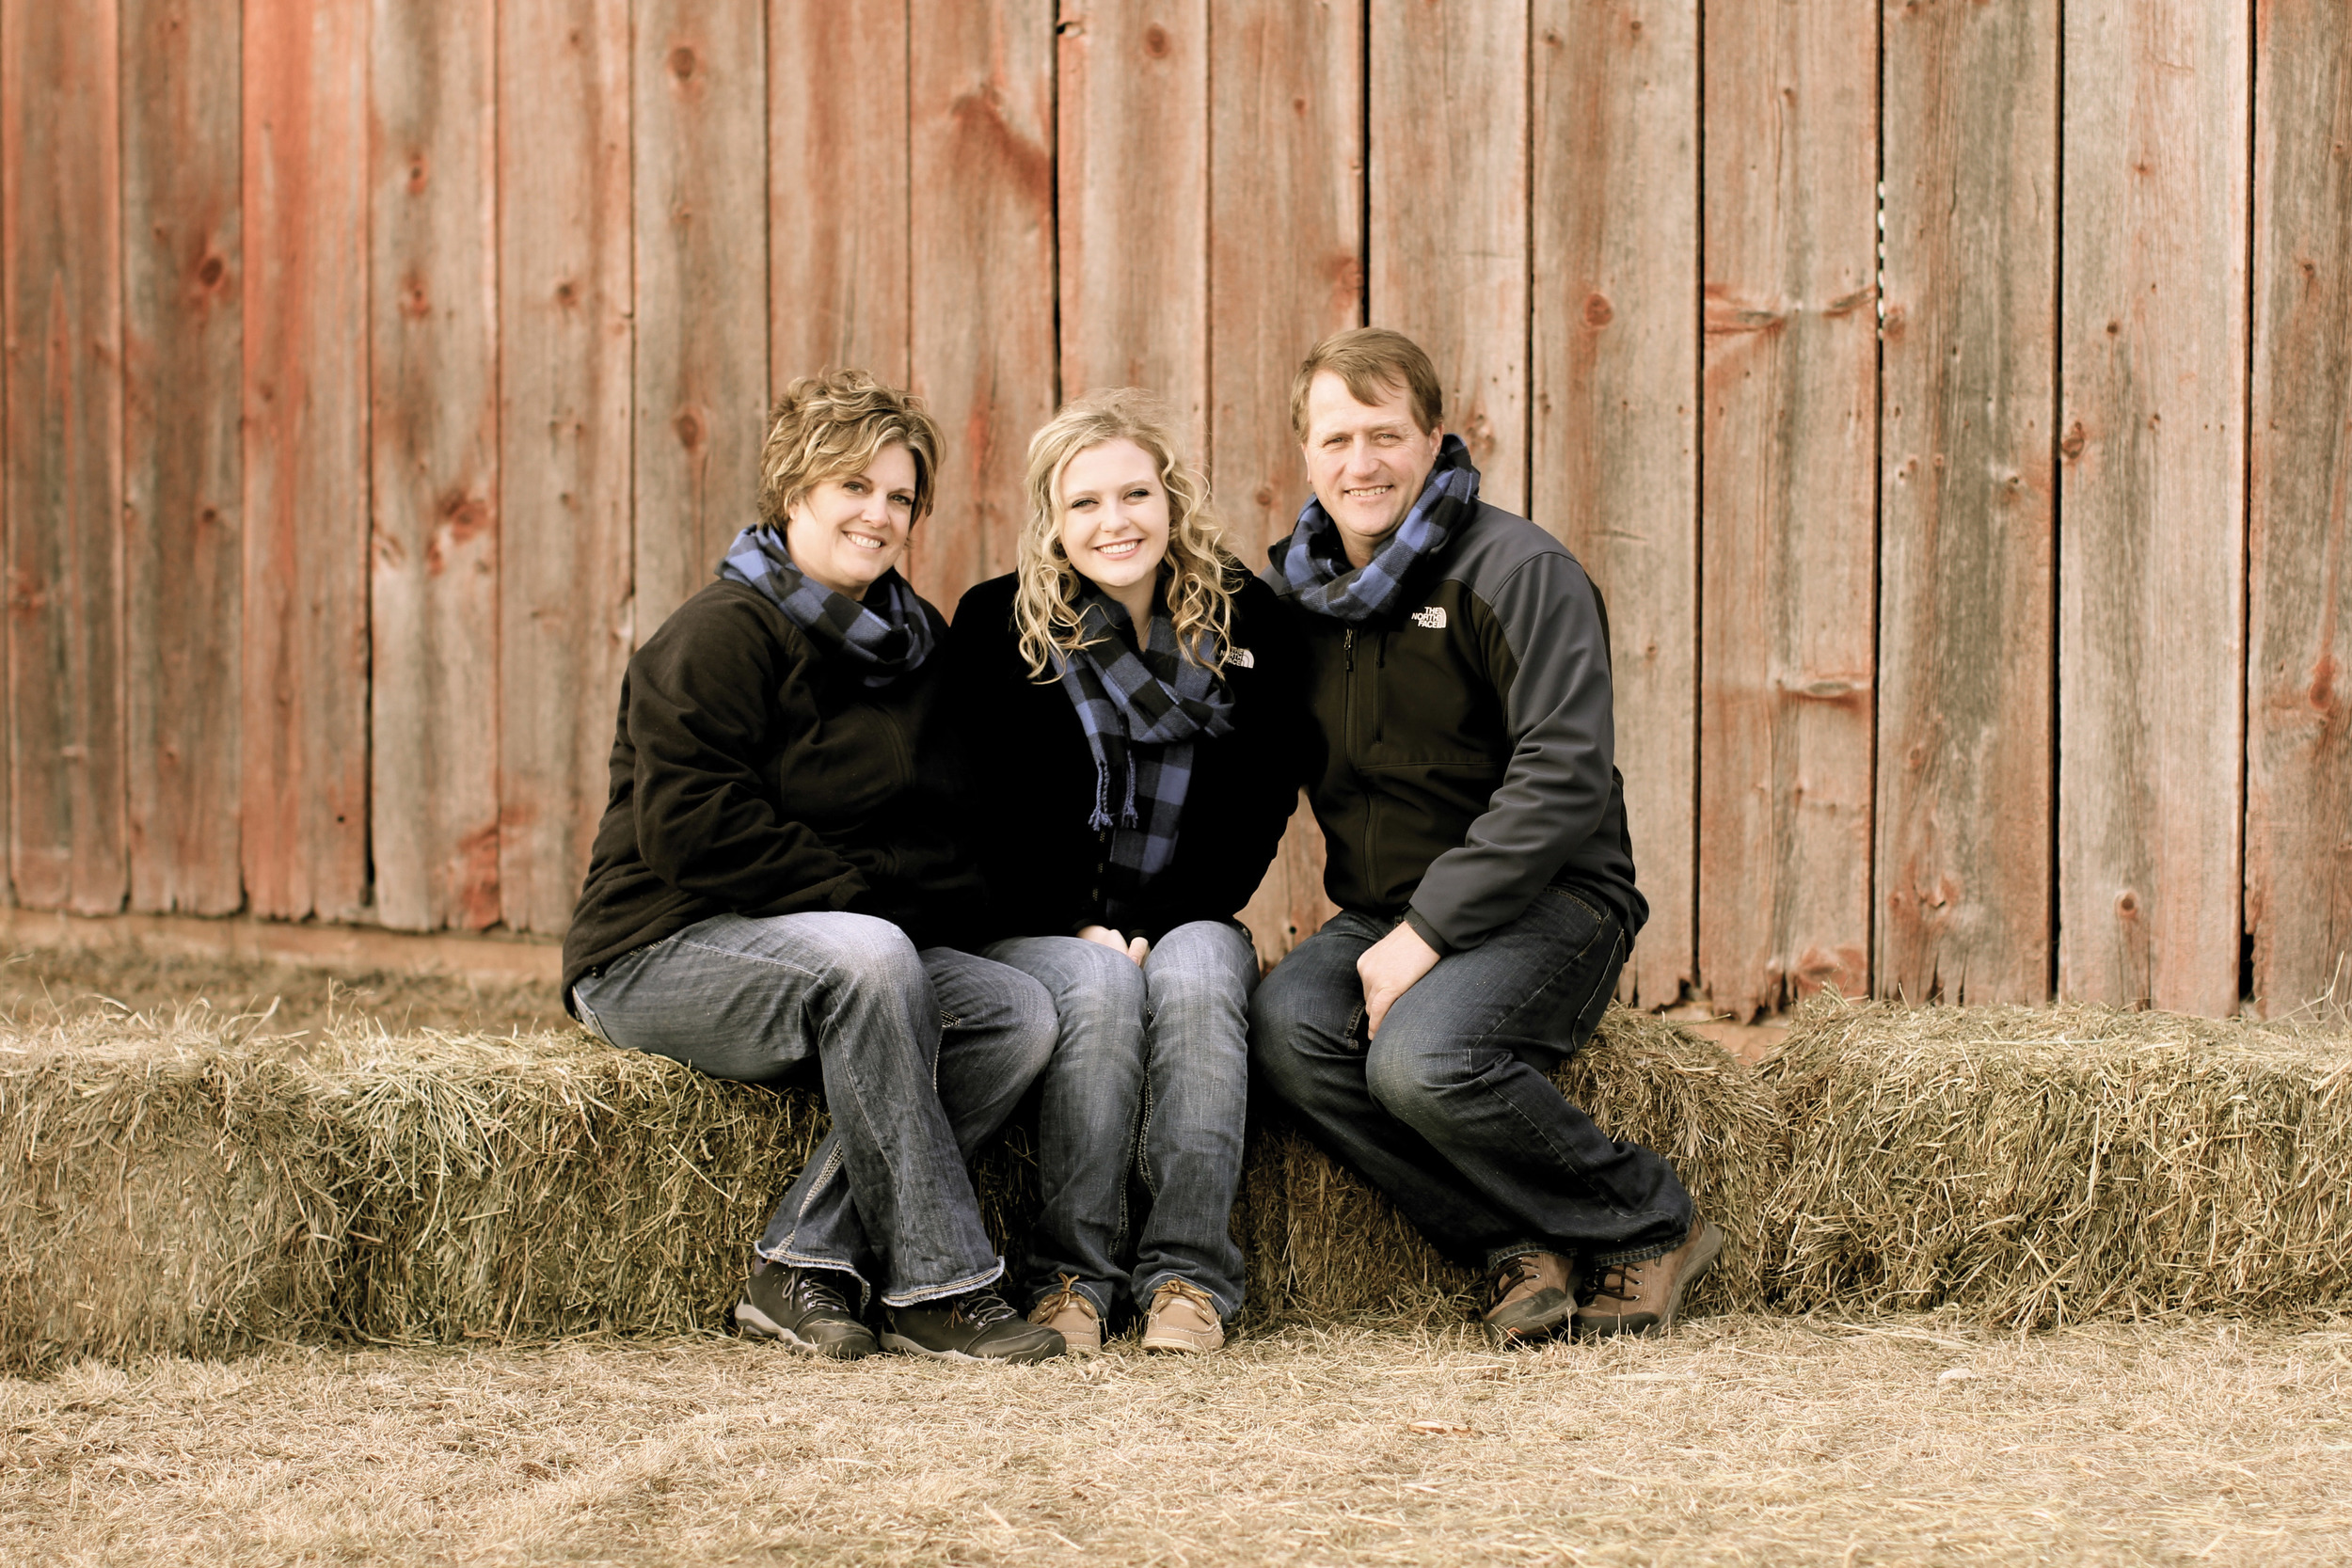 Mark and Amy Beisbier with their daughter Kori  To contact Badger Pork, LLC, call Mark Beisbier at  (608) 393-9862